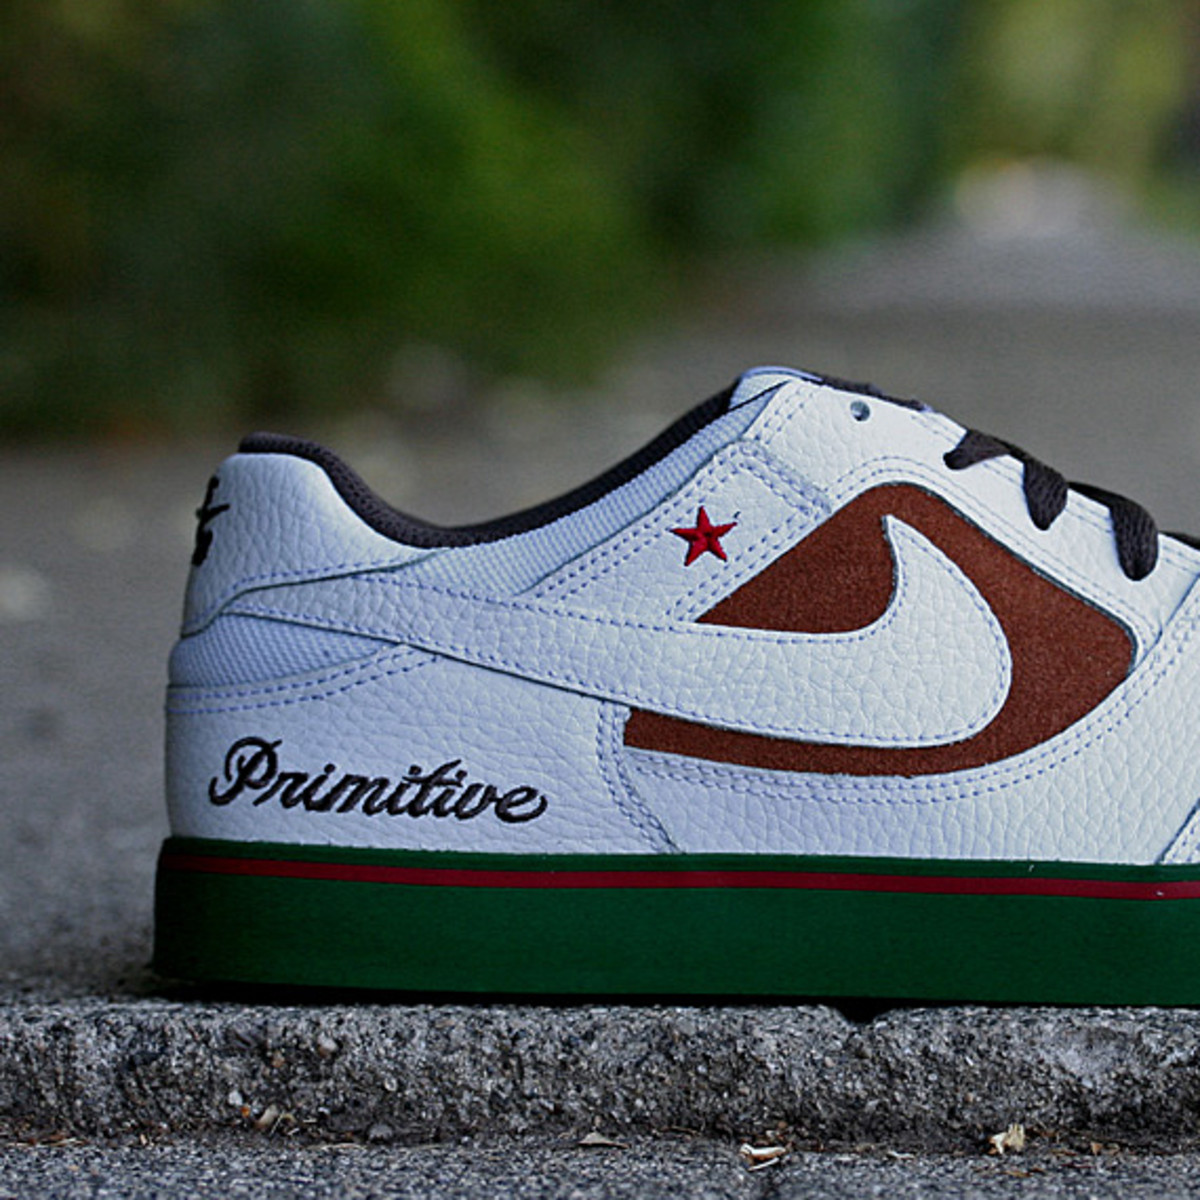 primitive-nike-skateboarding-p-rod-25-02